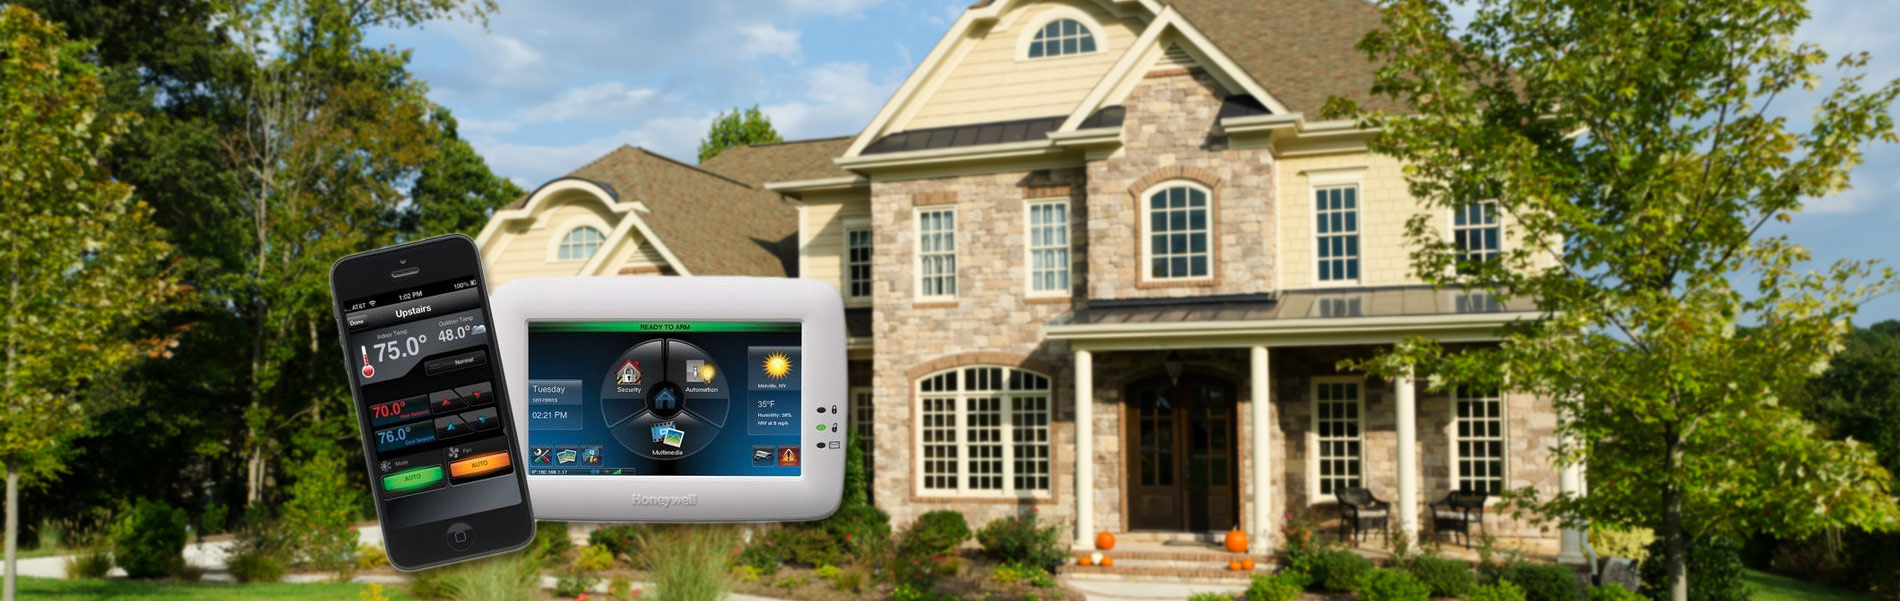 Countryside Alarms sells and installs Tuxedo Touch by Honeywell - security system ready to arm